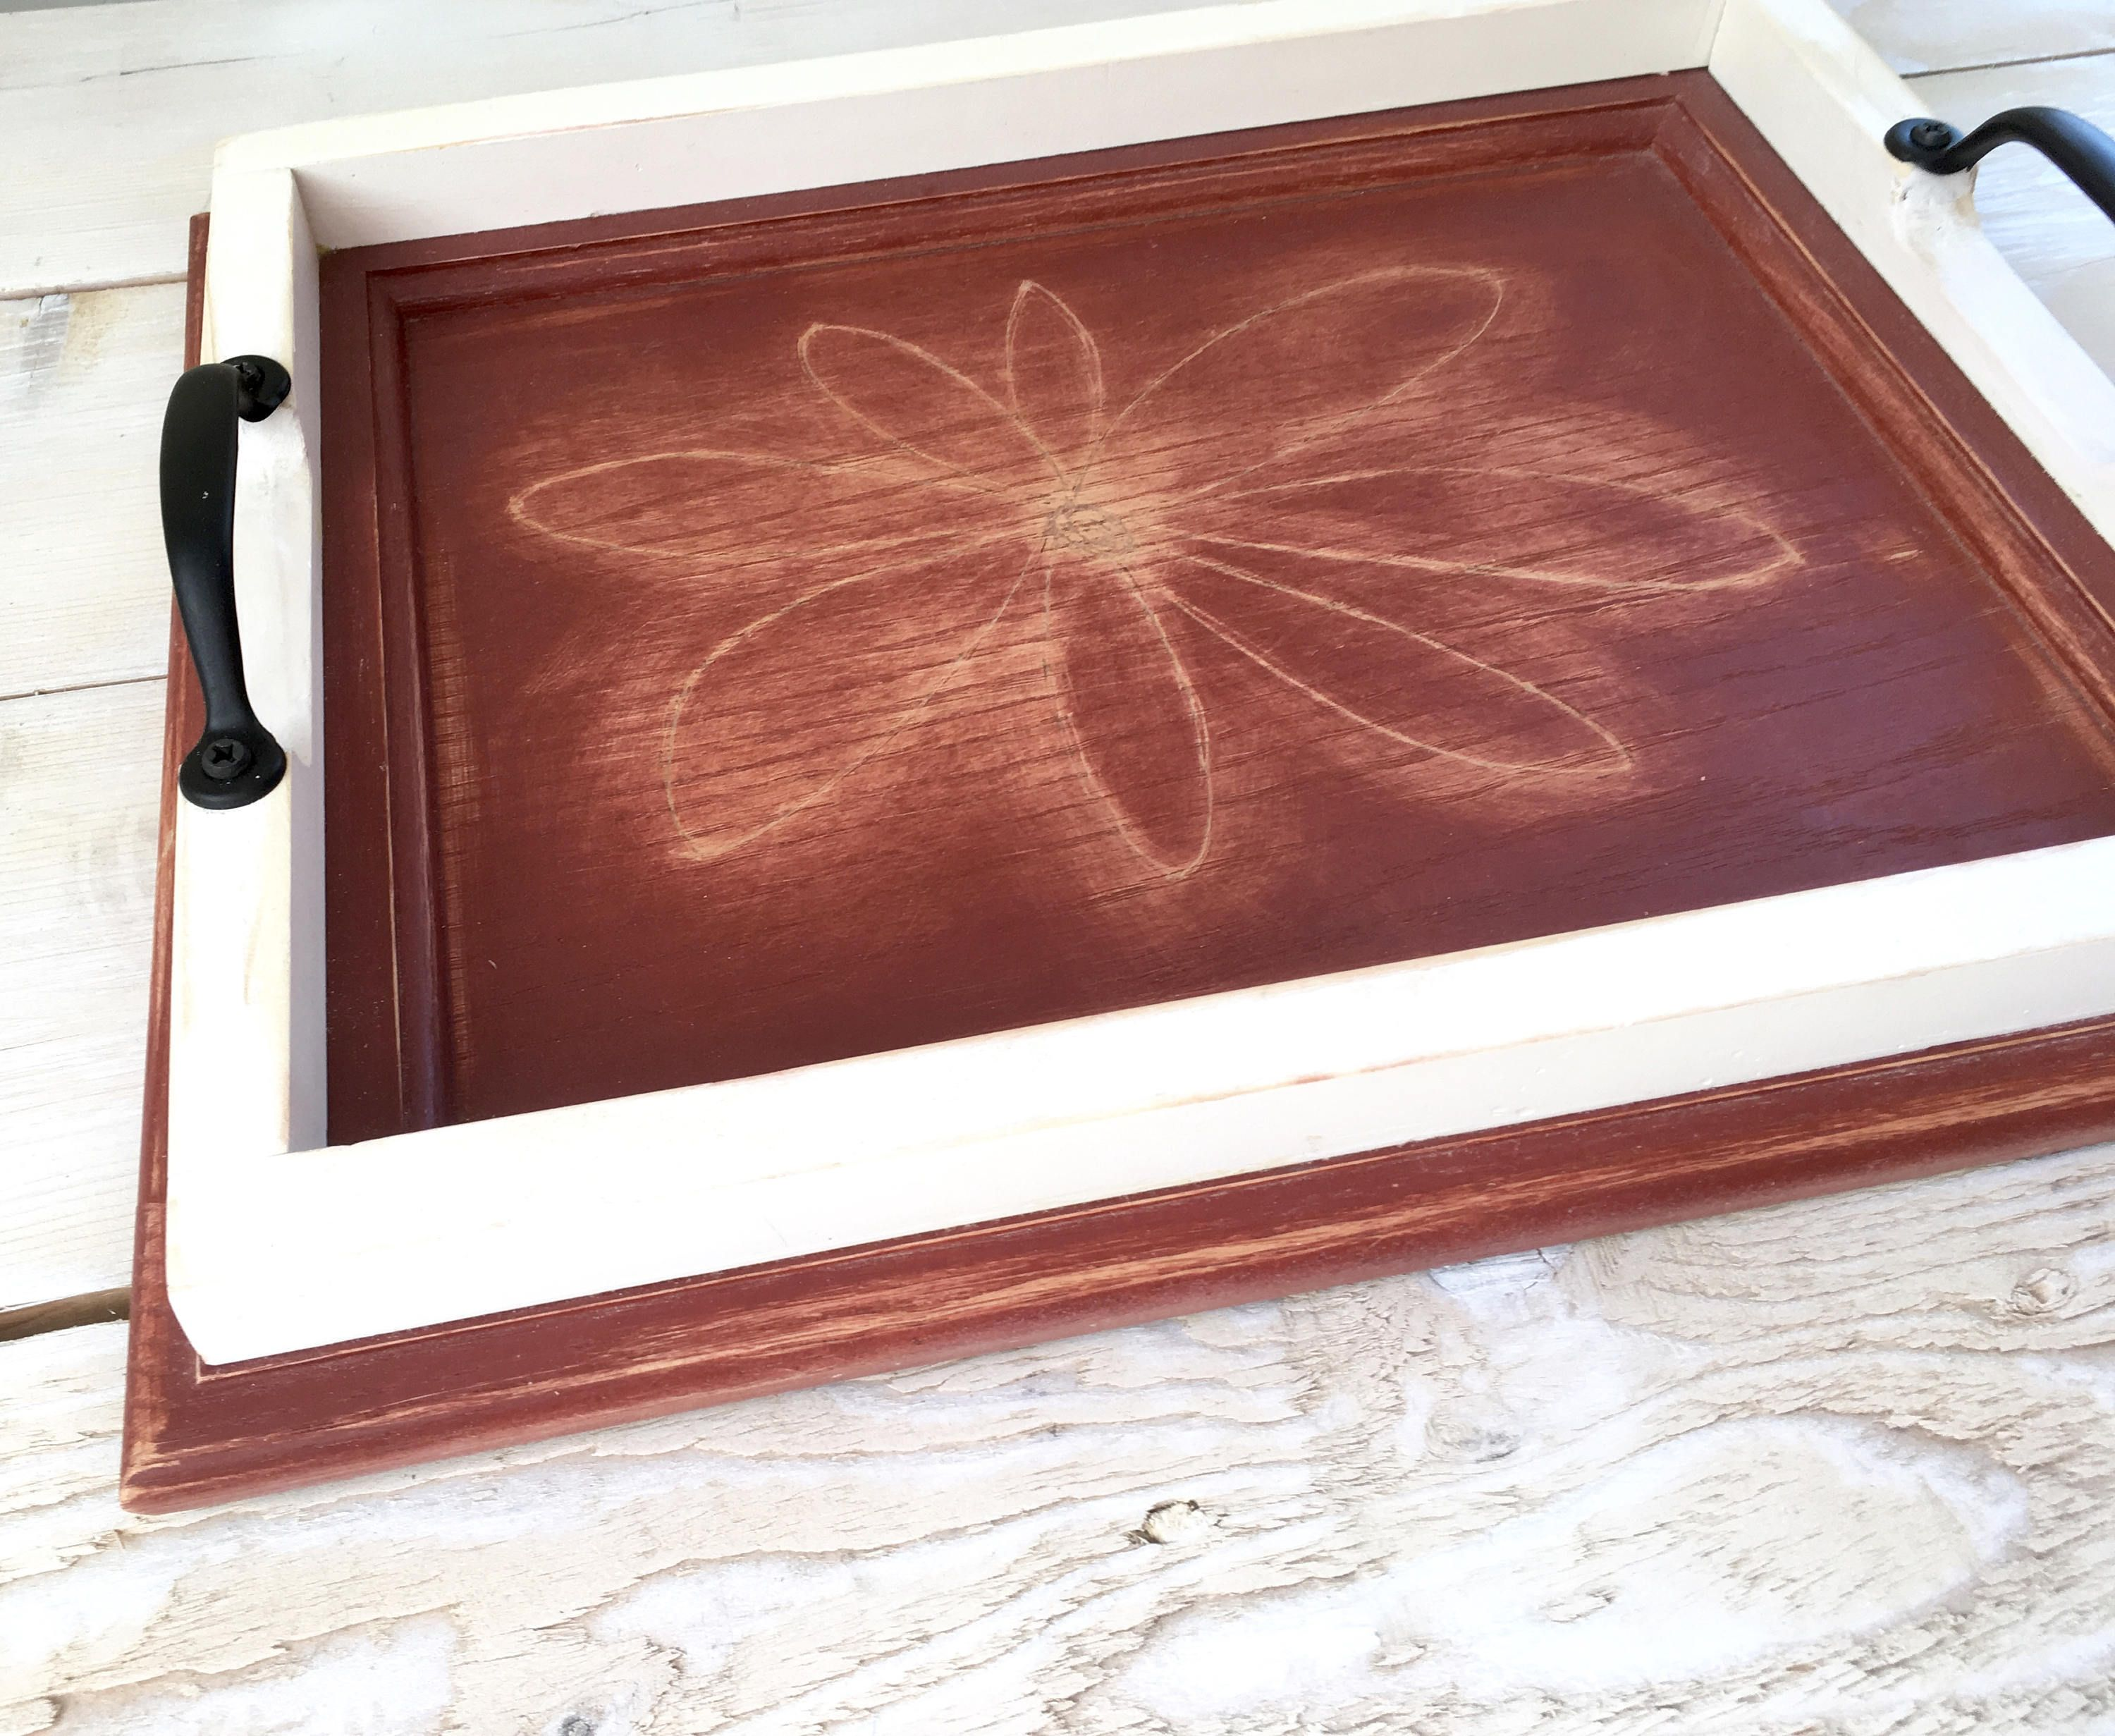 Hand carved red decorative tray from repurposed cabinet door